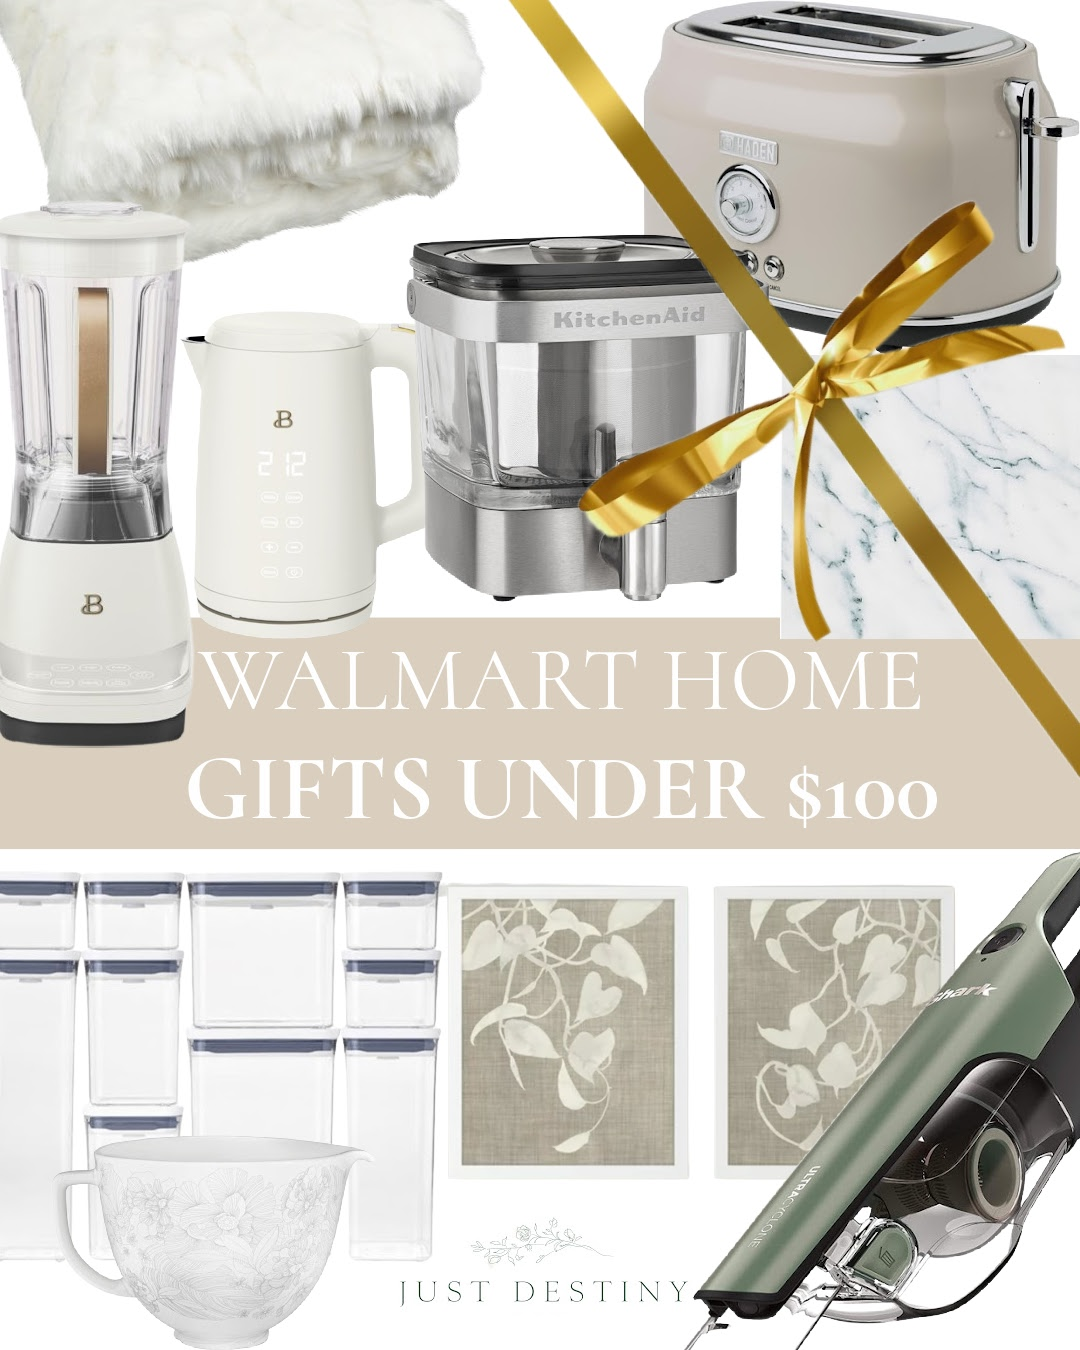 Walmart Christmas Gift Idea for the Home Under $100